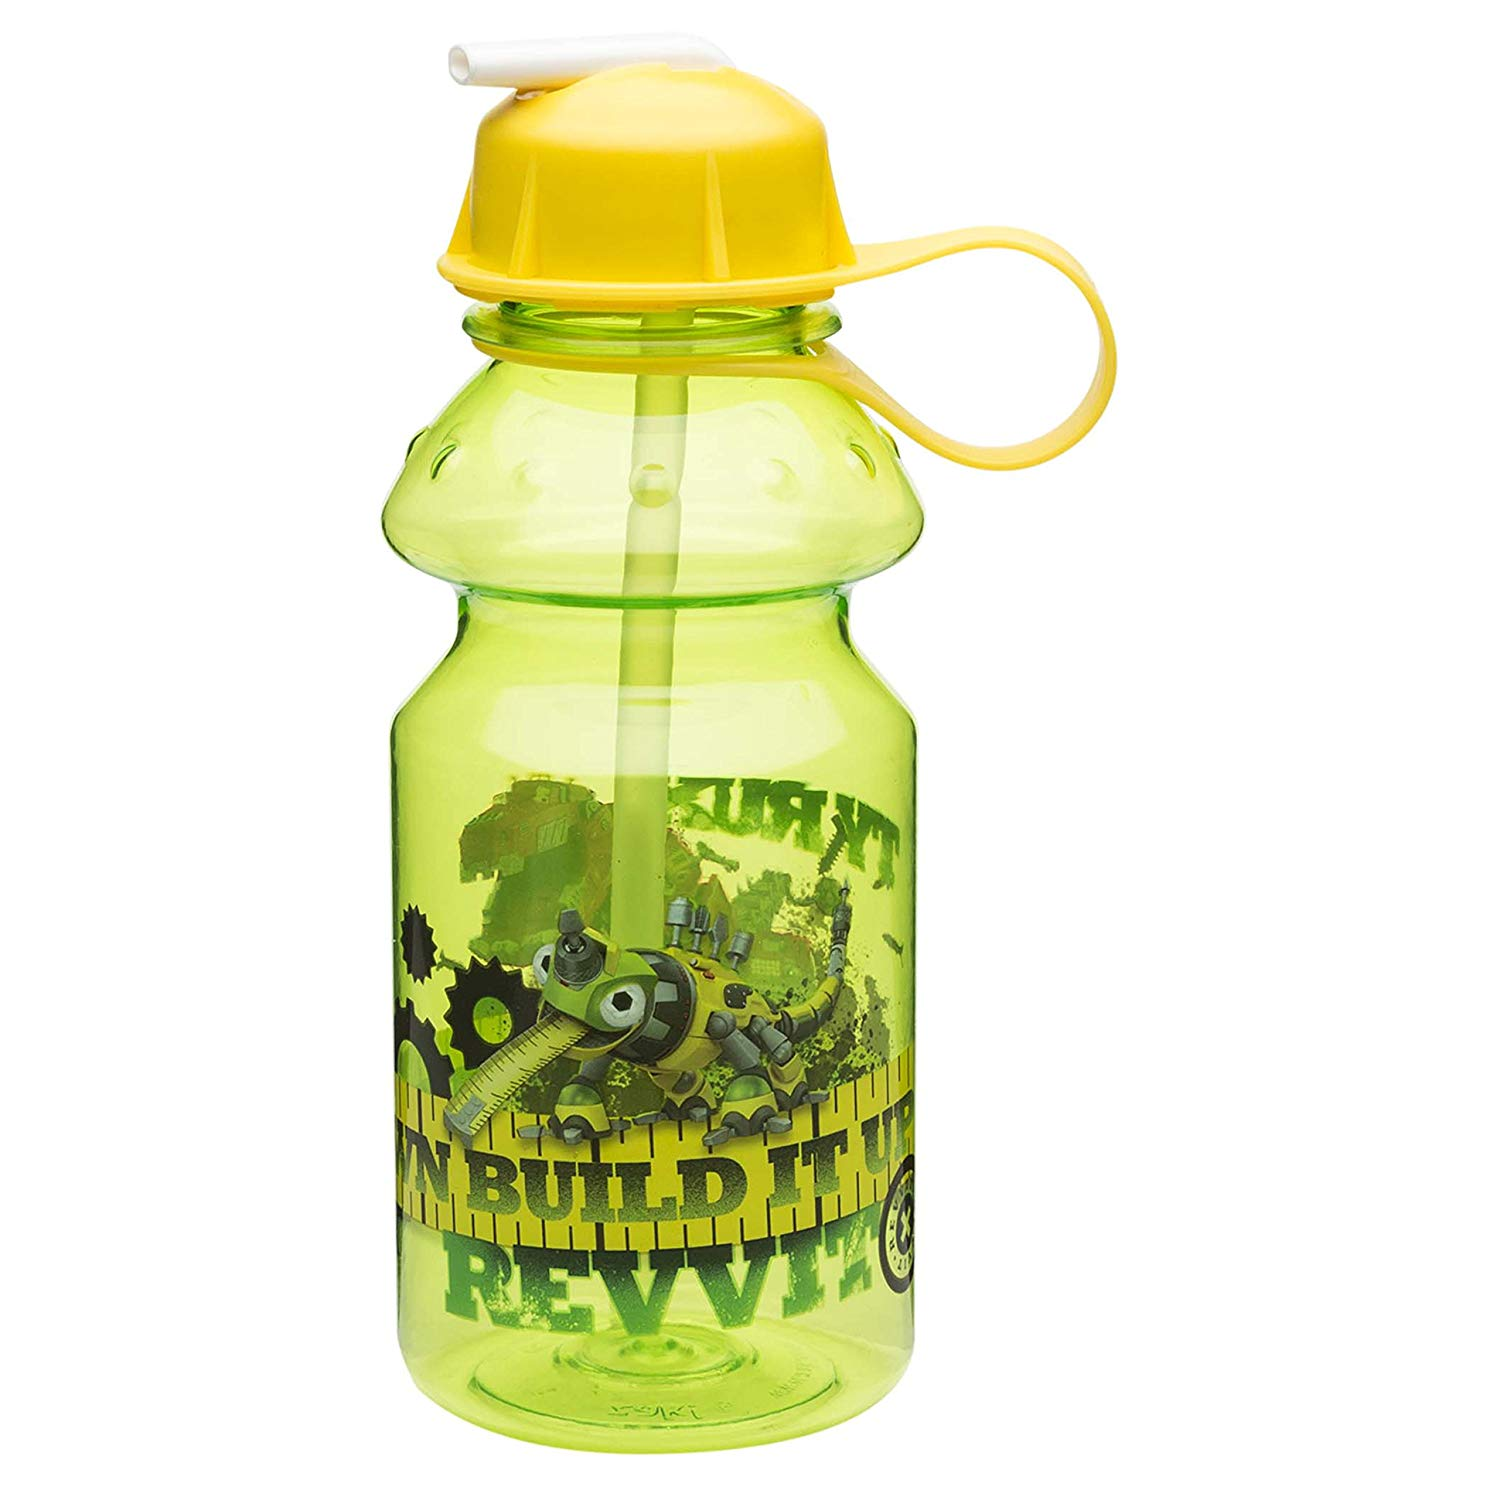 bf3c903f54 Get Quotations · Zak Designs Dinotrux 14 oz. Water Bottle with Flip Straw,  Reptool Revvit